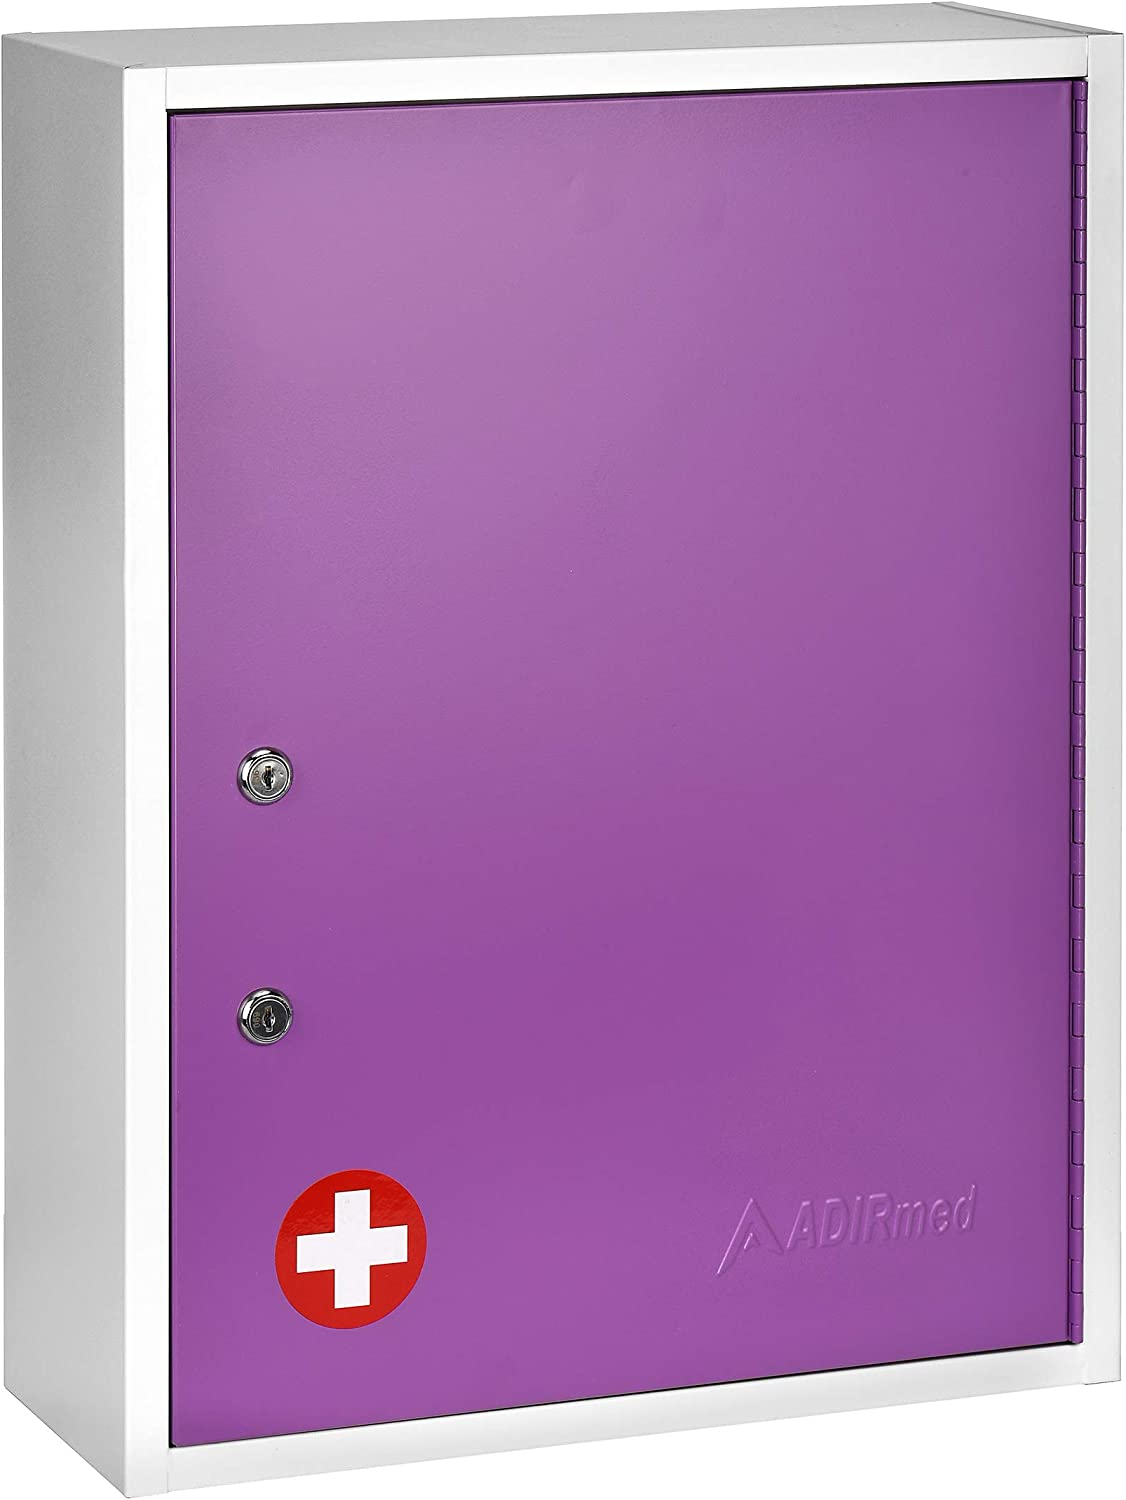 AdirMed Large Dual-Lock Medicine Cabinet – Wall Mounted & Secure Steel Medicine Pills & First Aid Kit & Emeergency Kit Box with Locks for Home Office & School Use (Purple)